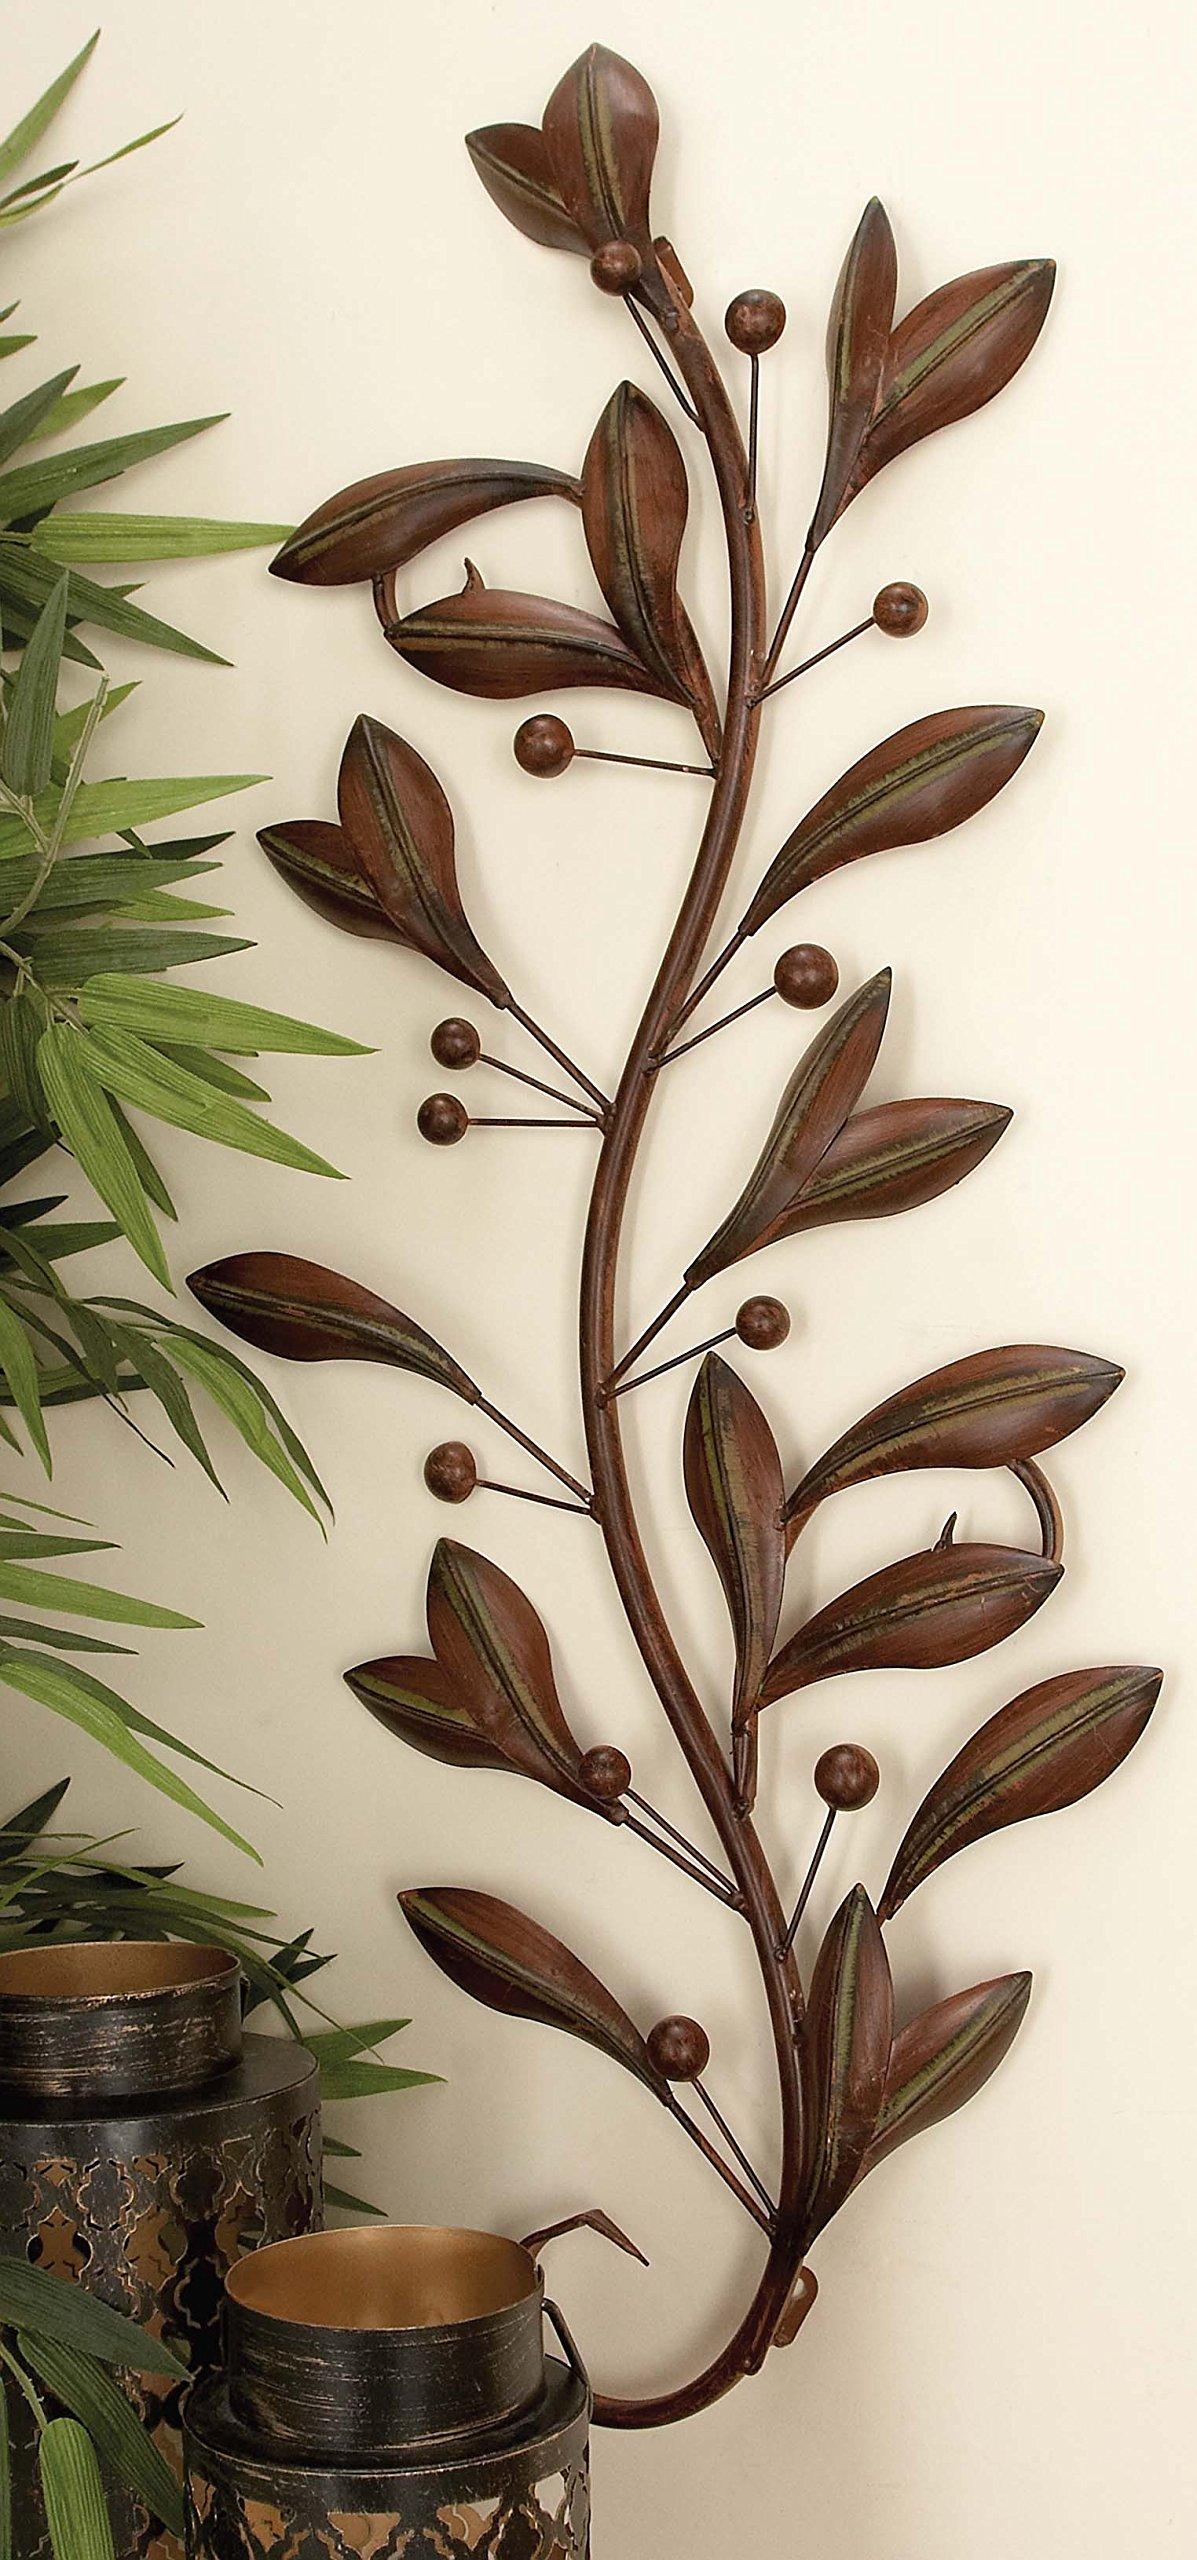 Deco 79 63048 Loft Nature Metal Leaf Wall Decor, 14 by 36-Inch, Antique Brown/Black, Sold in Pairs by Deco 79